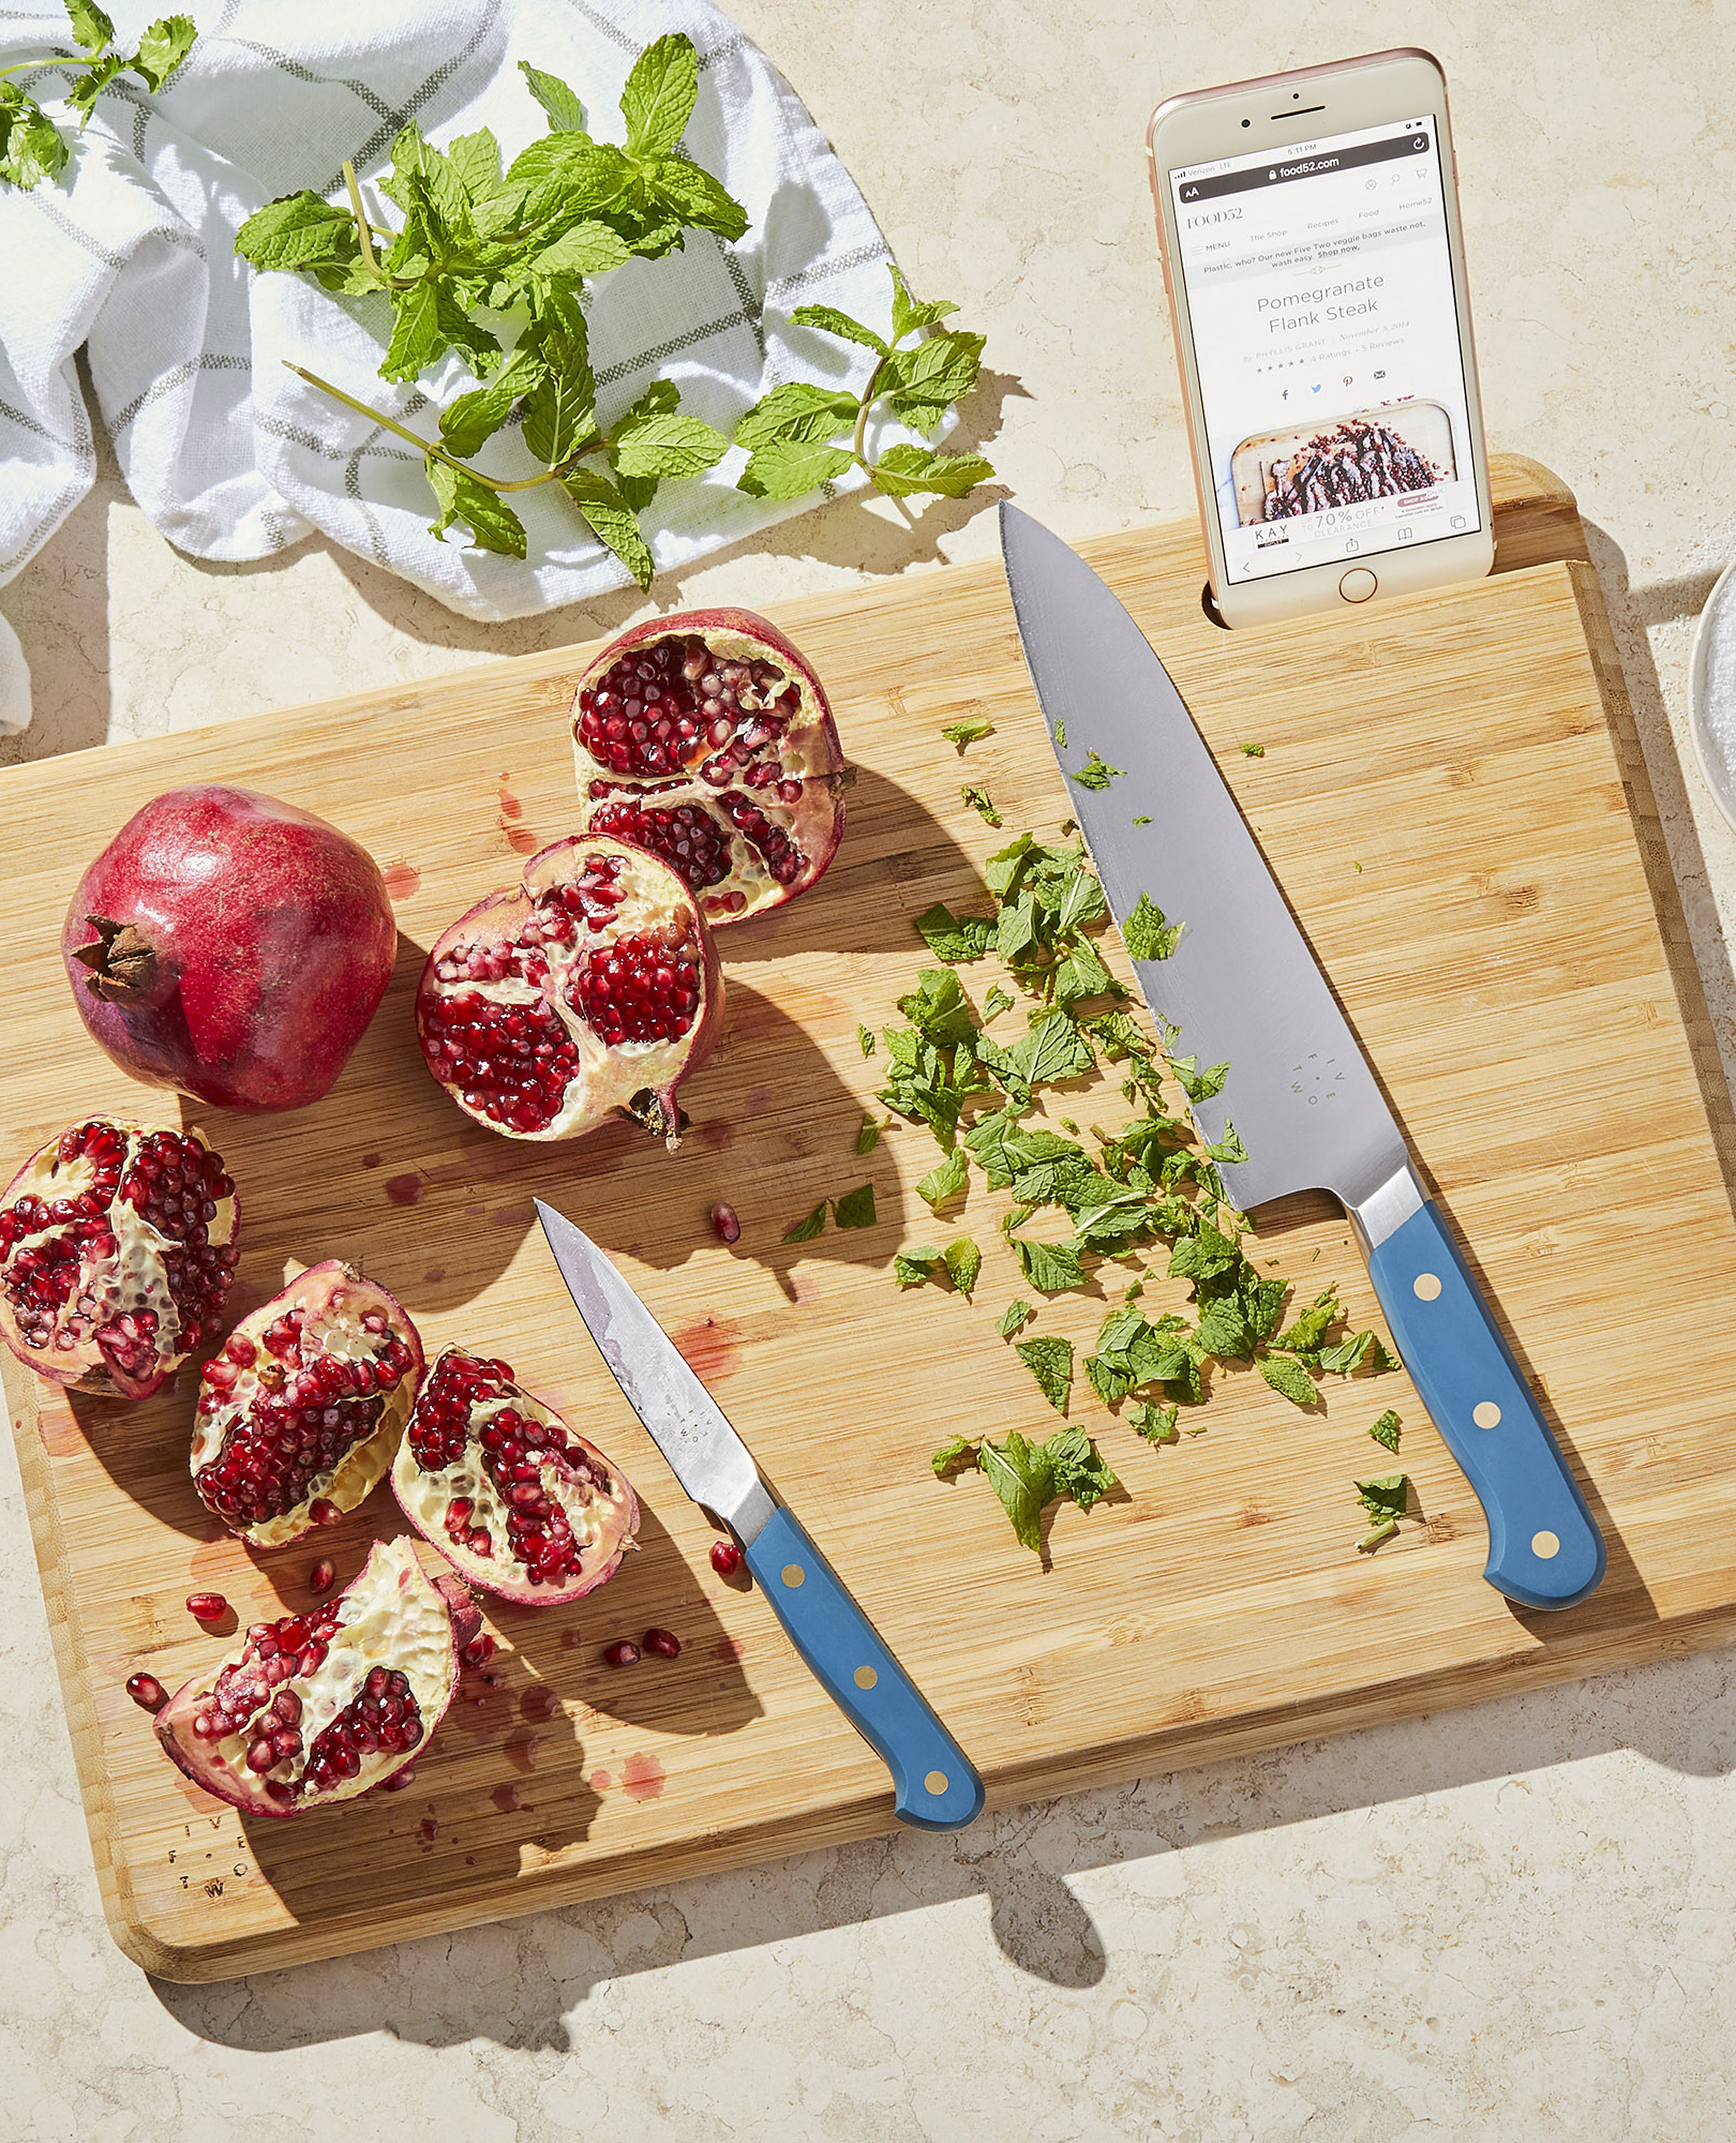 Charcuterie Board or Meat Carving Board Like Getting Two Boards for the Price of One